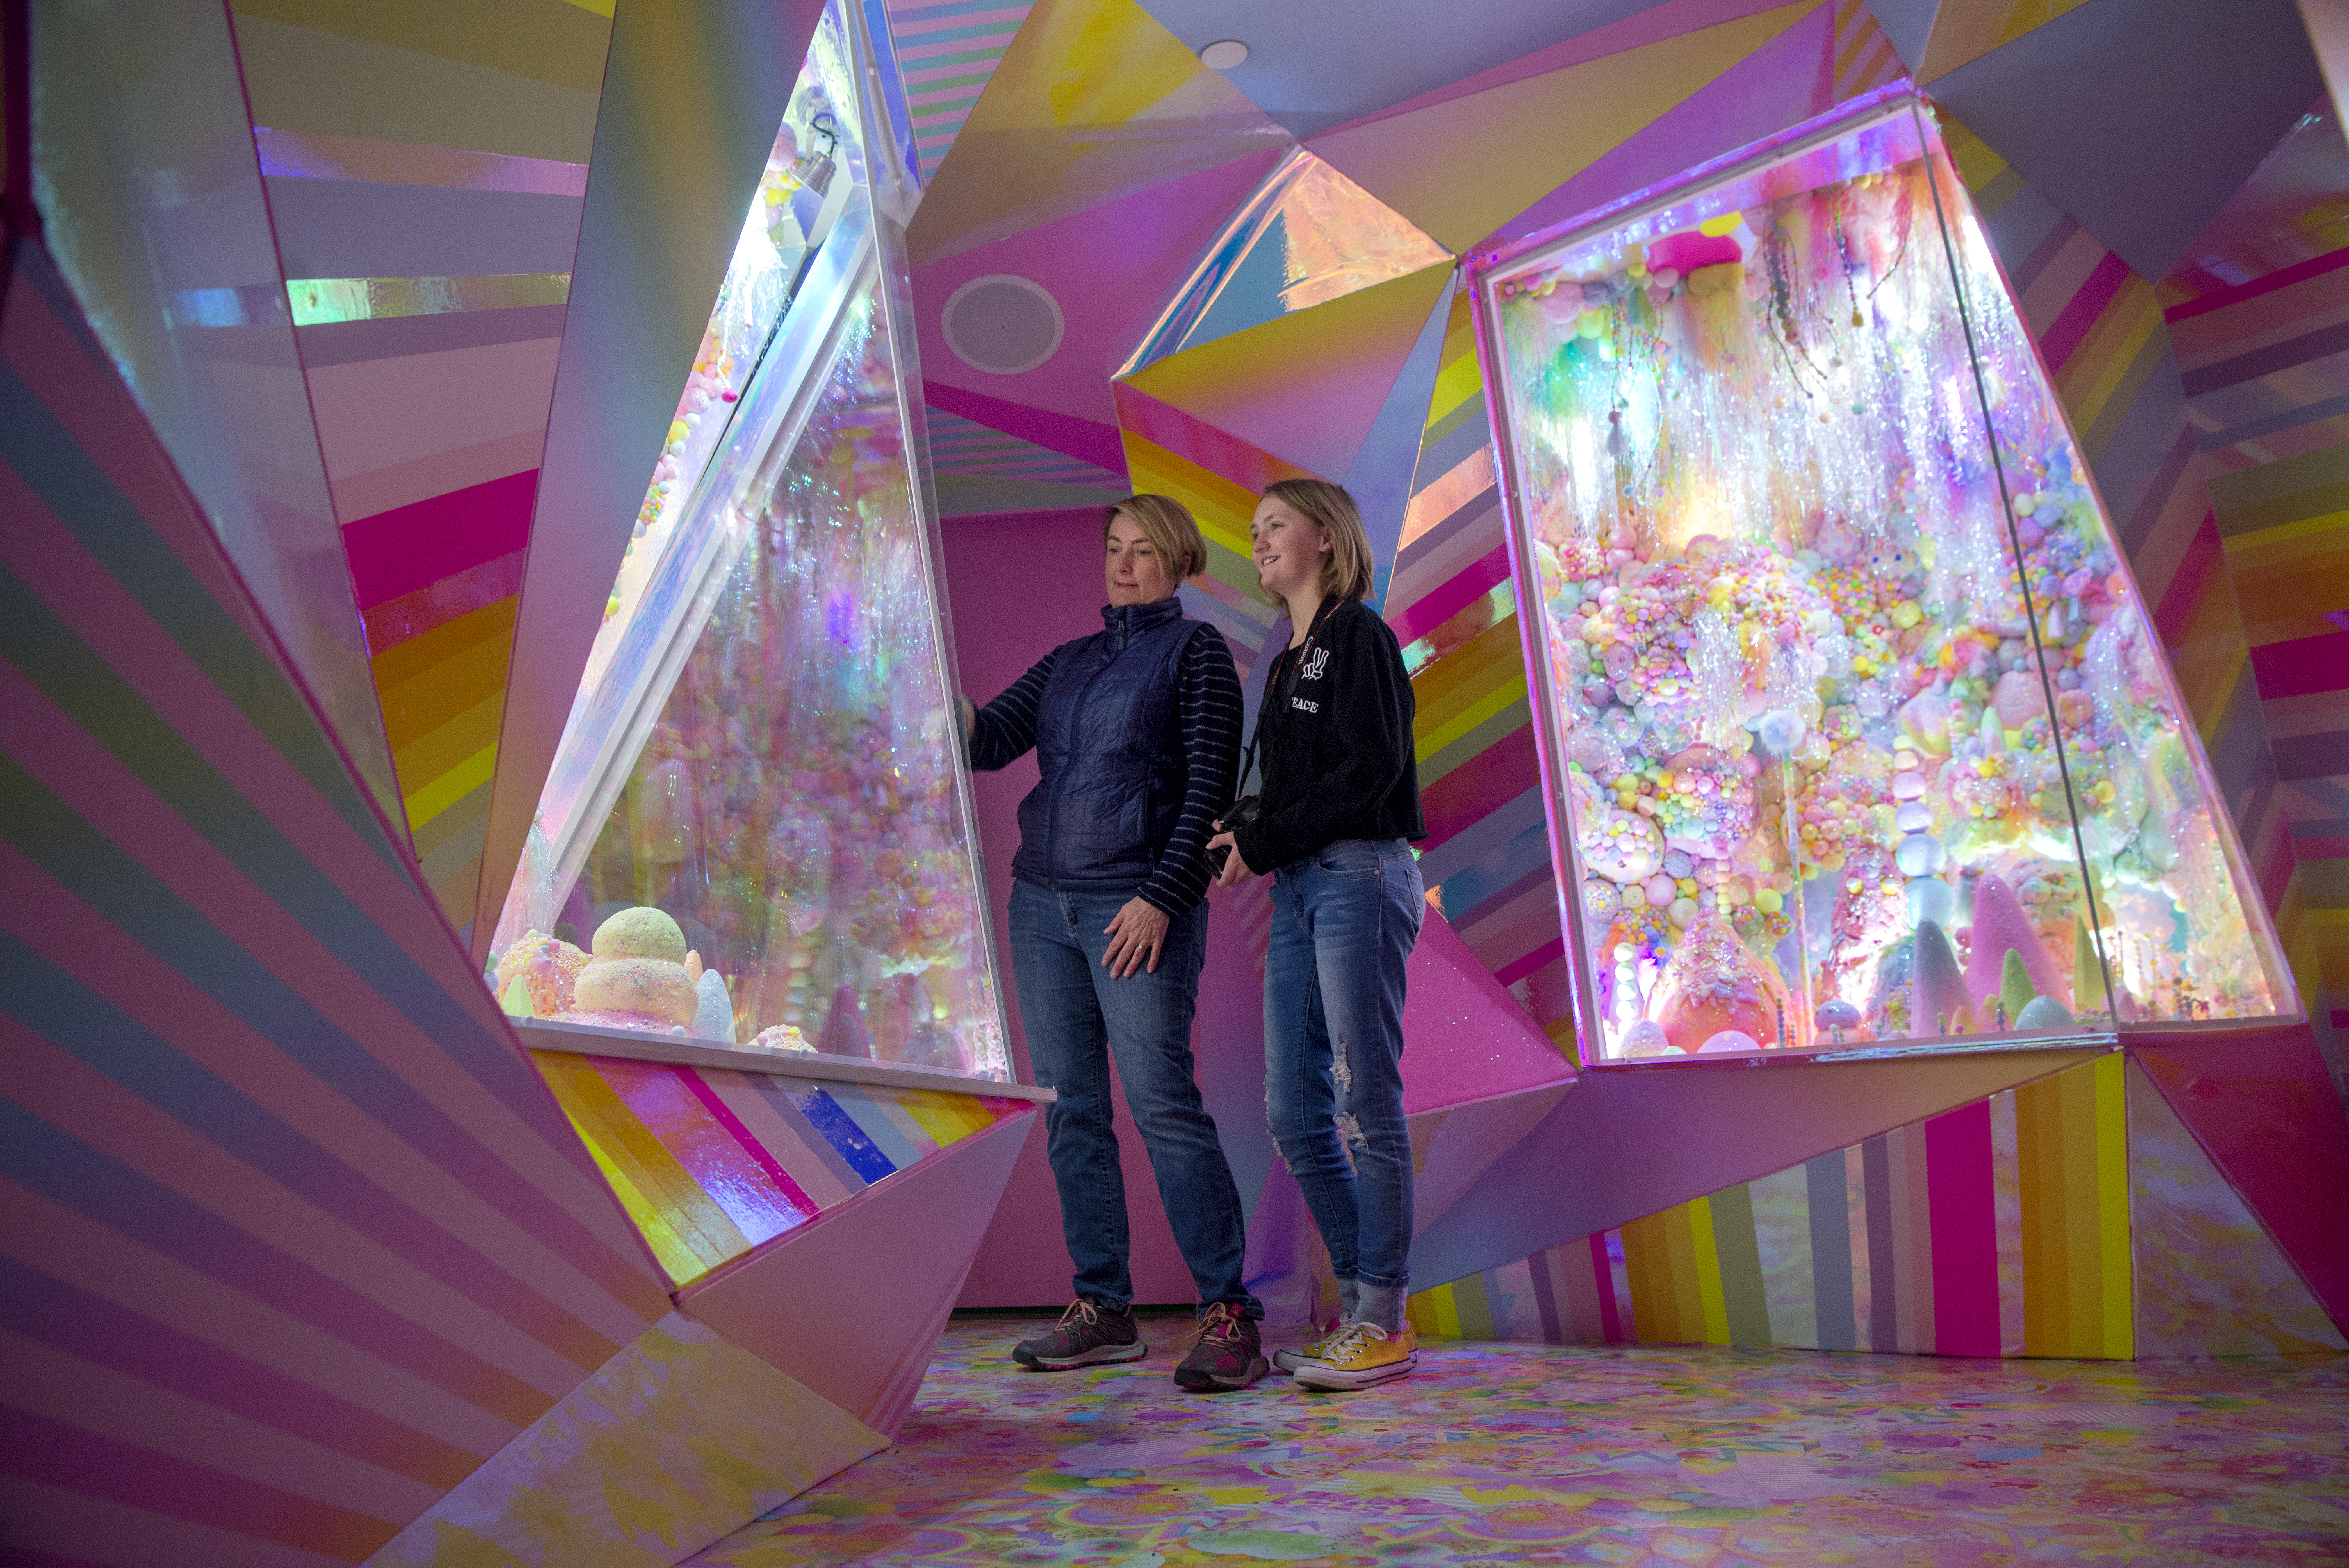 New Spaces New Stories At Meow Wolf Albuquerque Journal